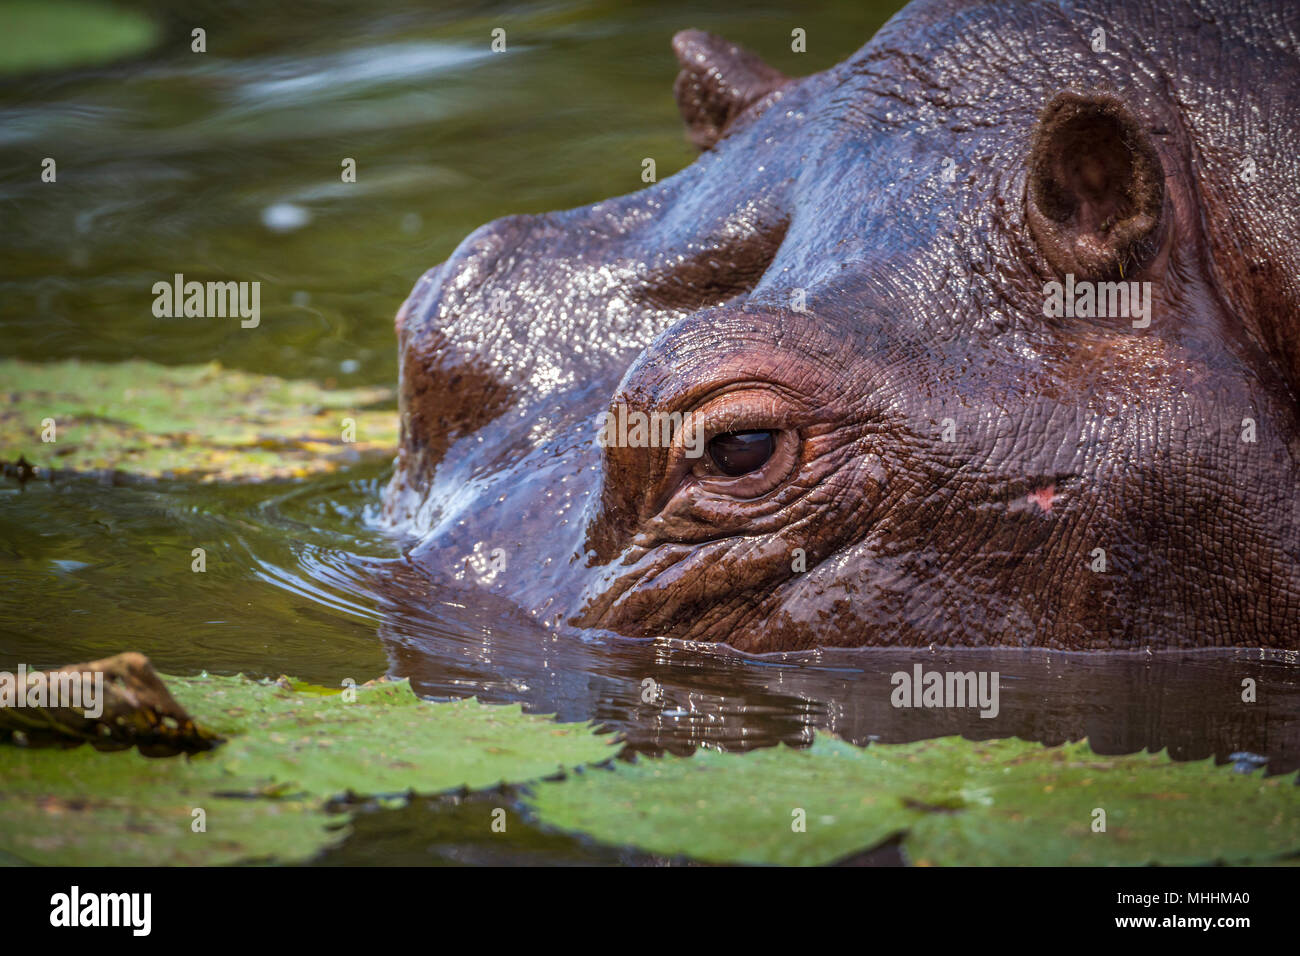 Hippopotamusin Kruger national park, South Africa ; Specie Hippopotamus amphibius family of Hippopotamidae - Stock Image